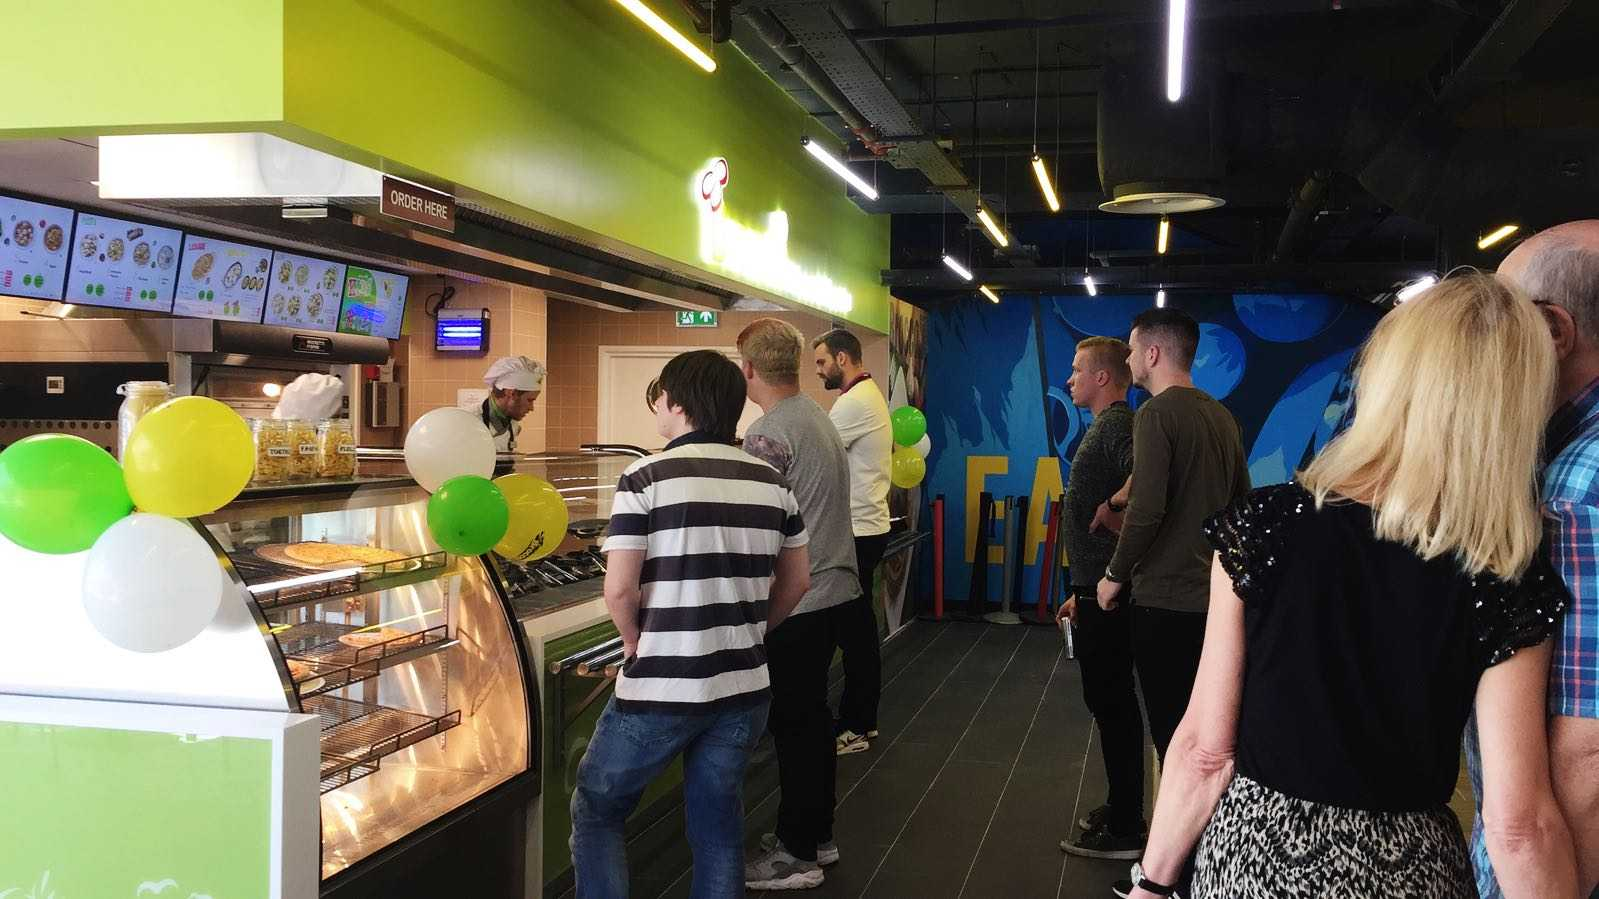 Broccoli Pizza and Pasta opens at The Crossing, Swindon Town Centre